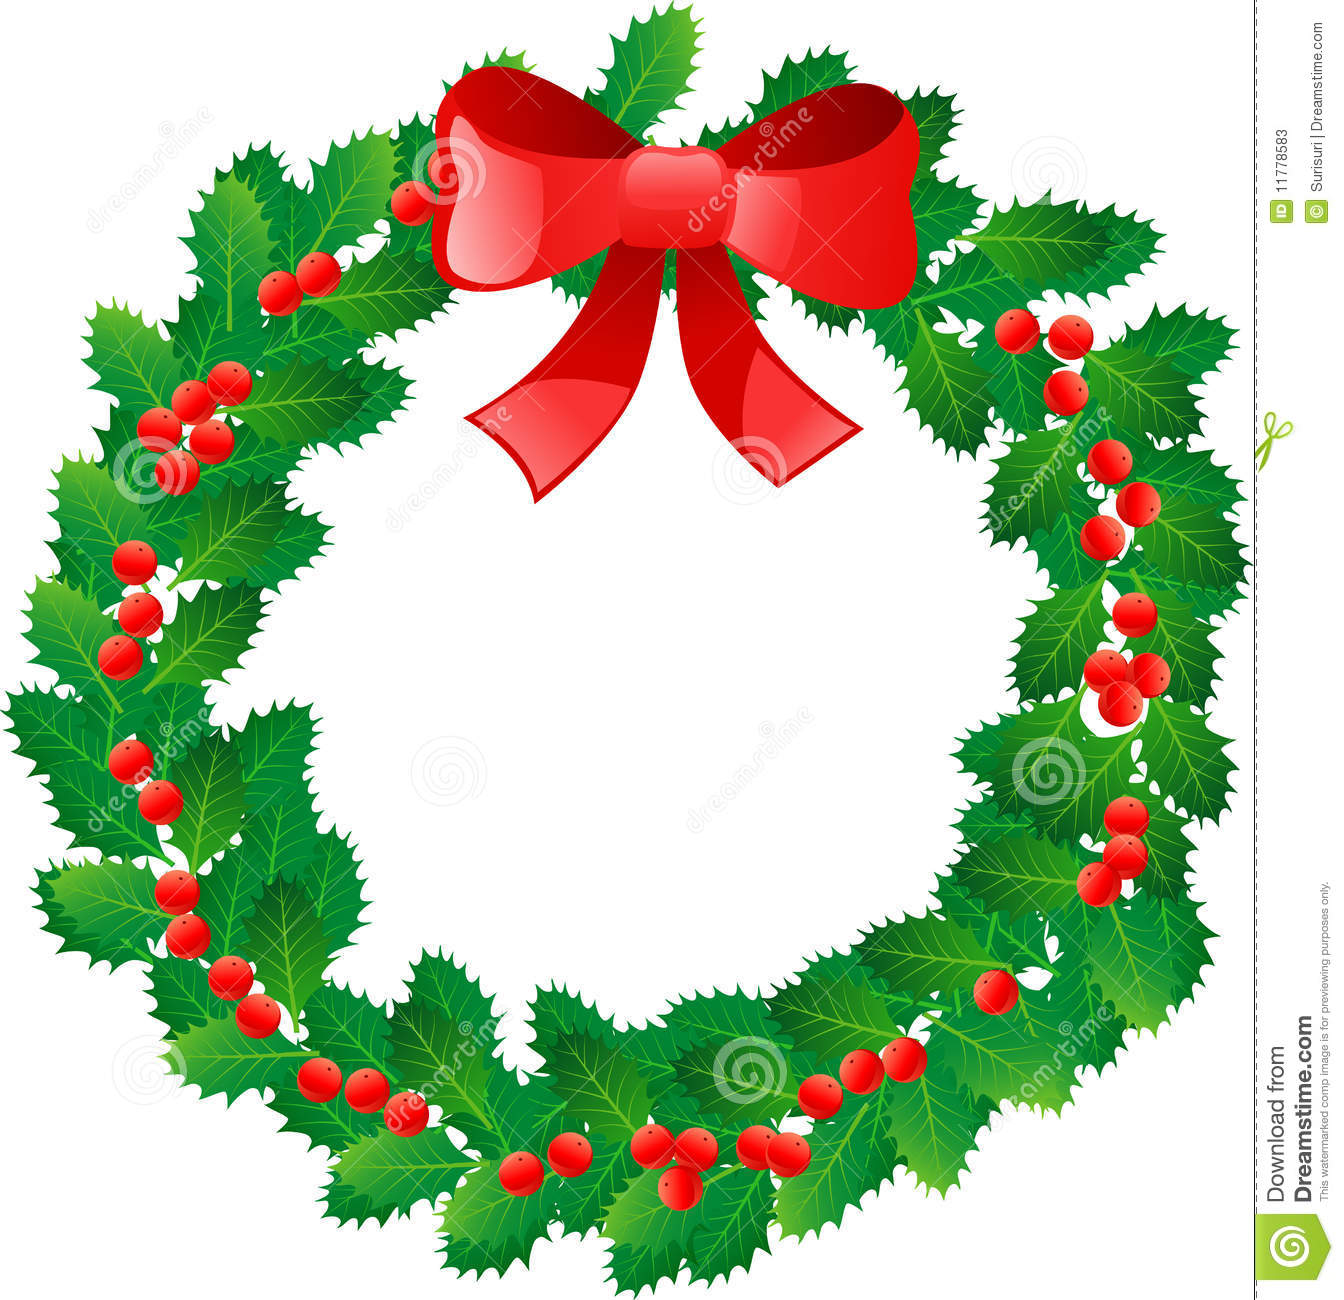 Beautiful Christmas Wreath With Red Berries Isolated On White.